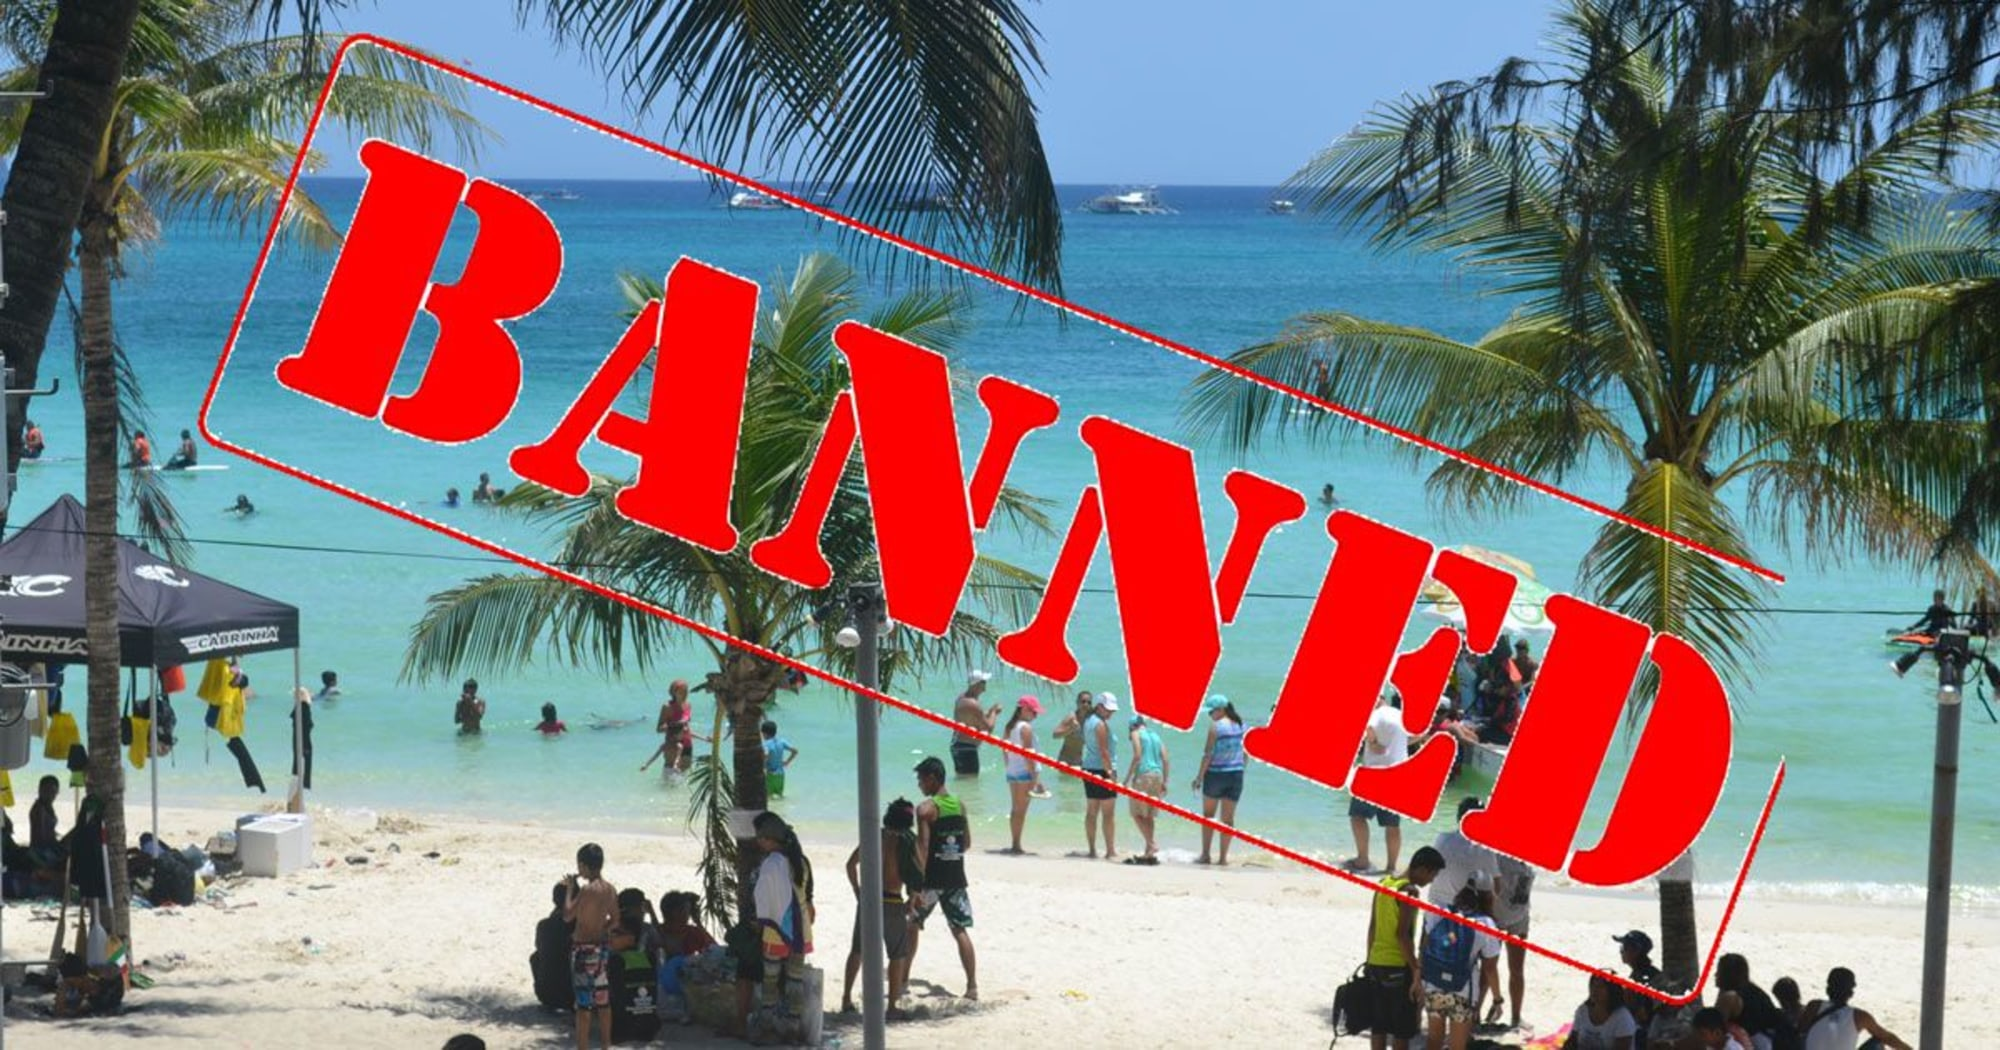 """Resolution passed declaring travelers """"Persona non grata"""" to individuals who fake their way into Boracay - Malay LGU"""